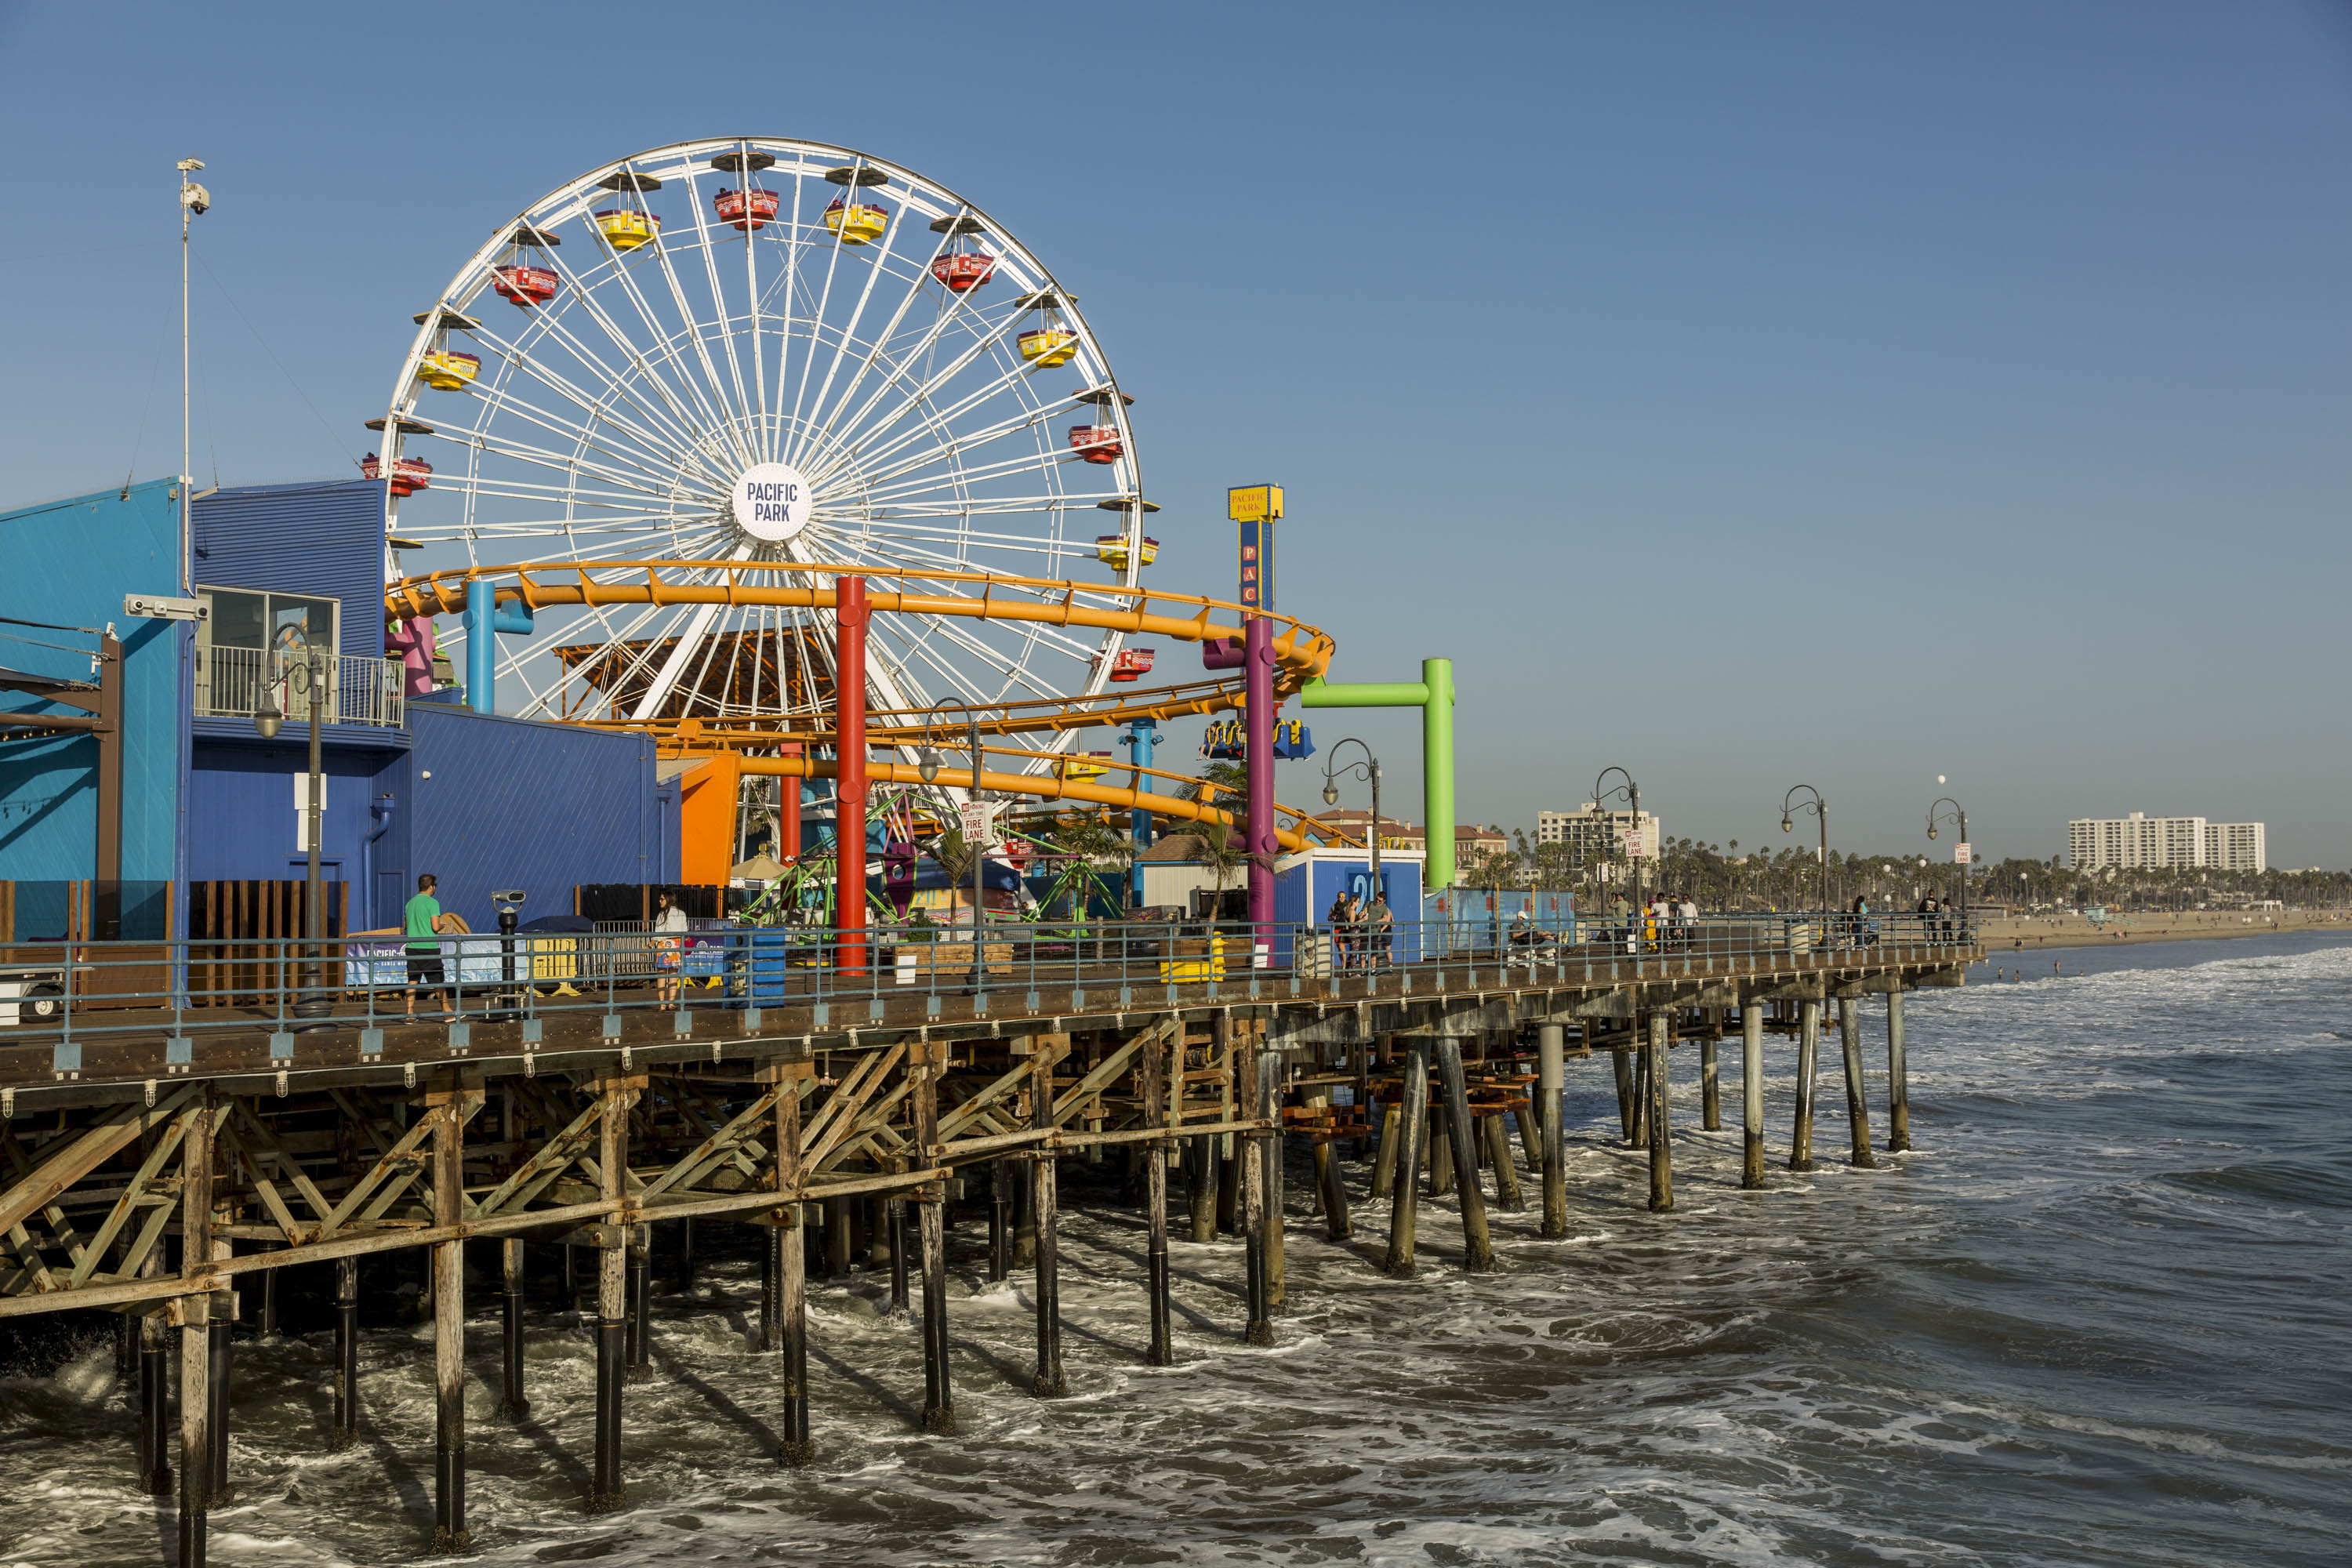 Pacific Park at Santa Monica Pier